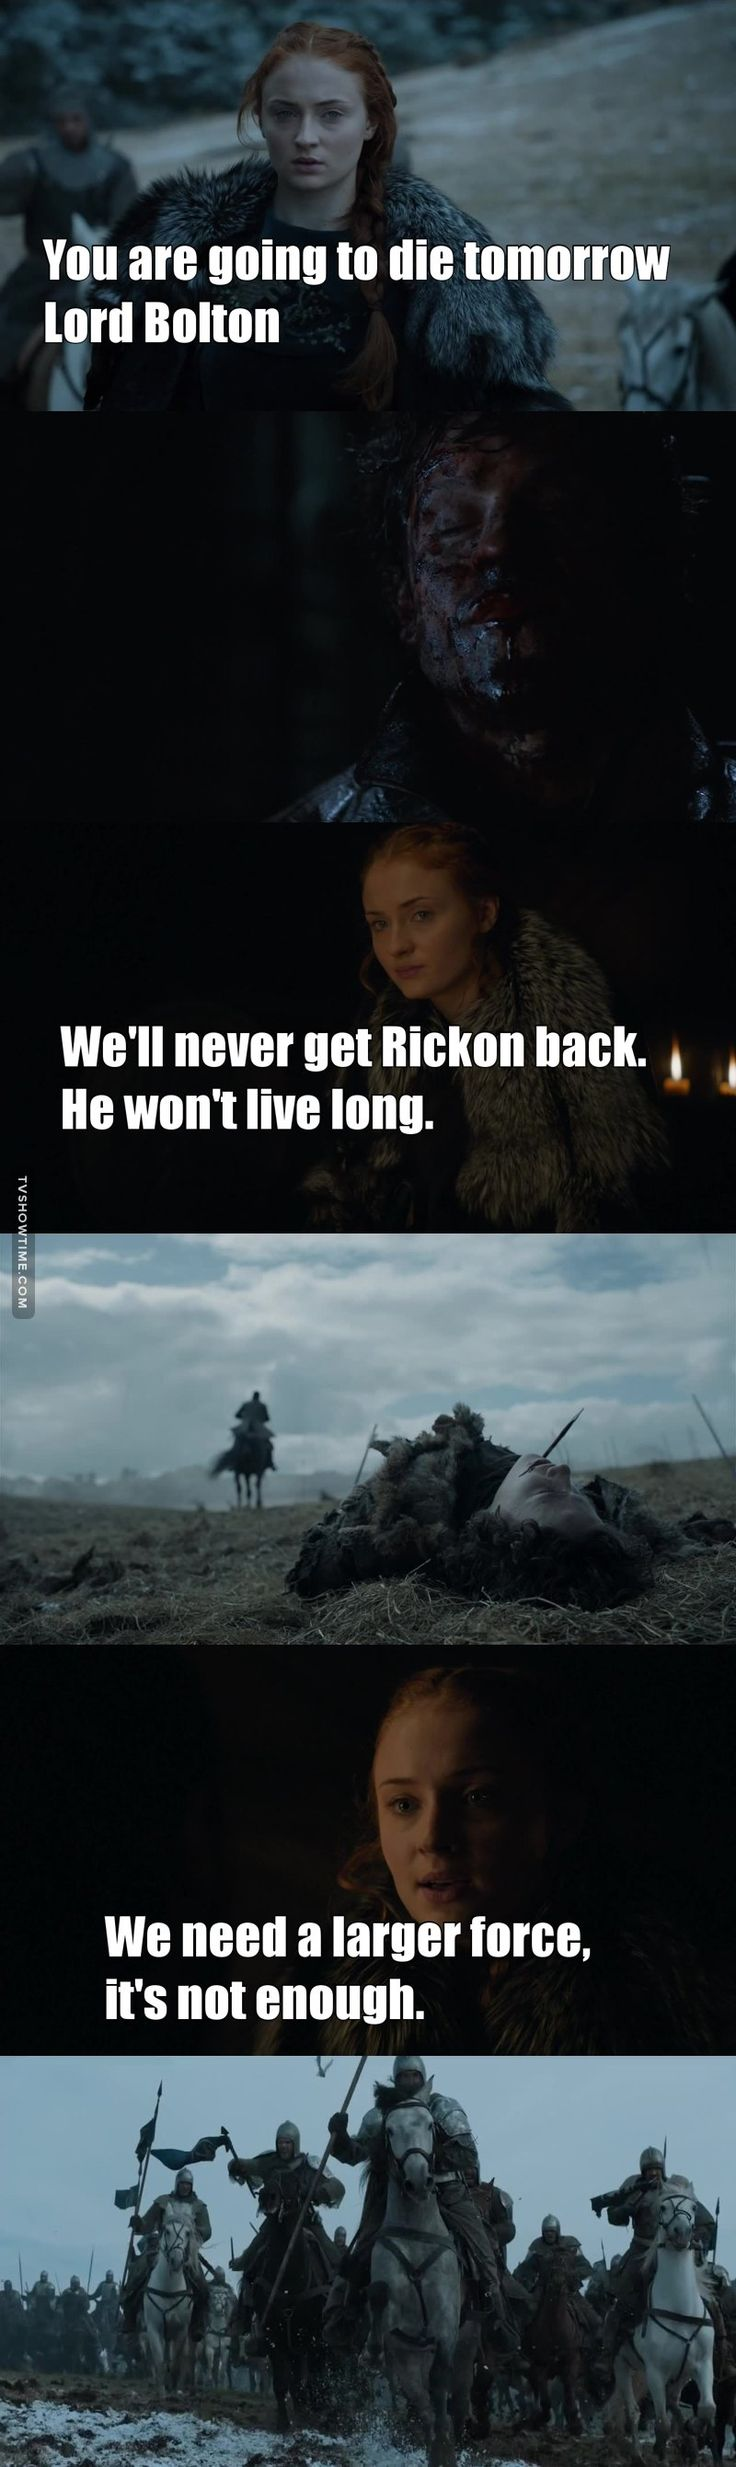 She truly understands the game now. Every single thing that she said turned out to be true. #TeamSansa <<